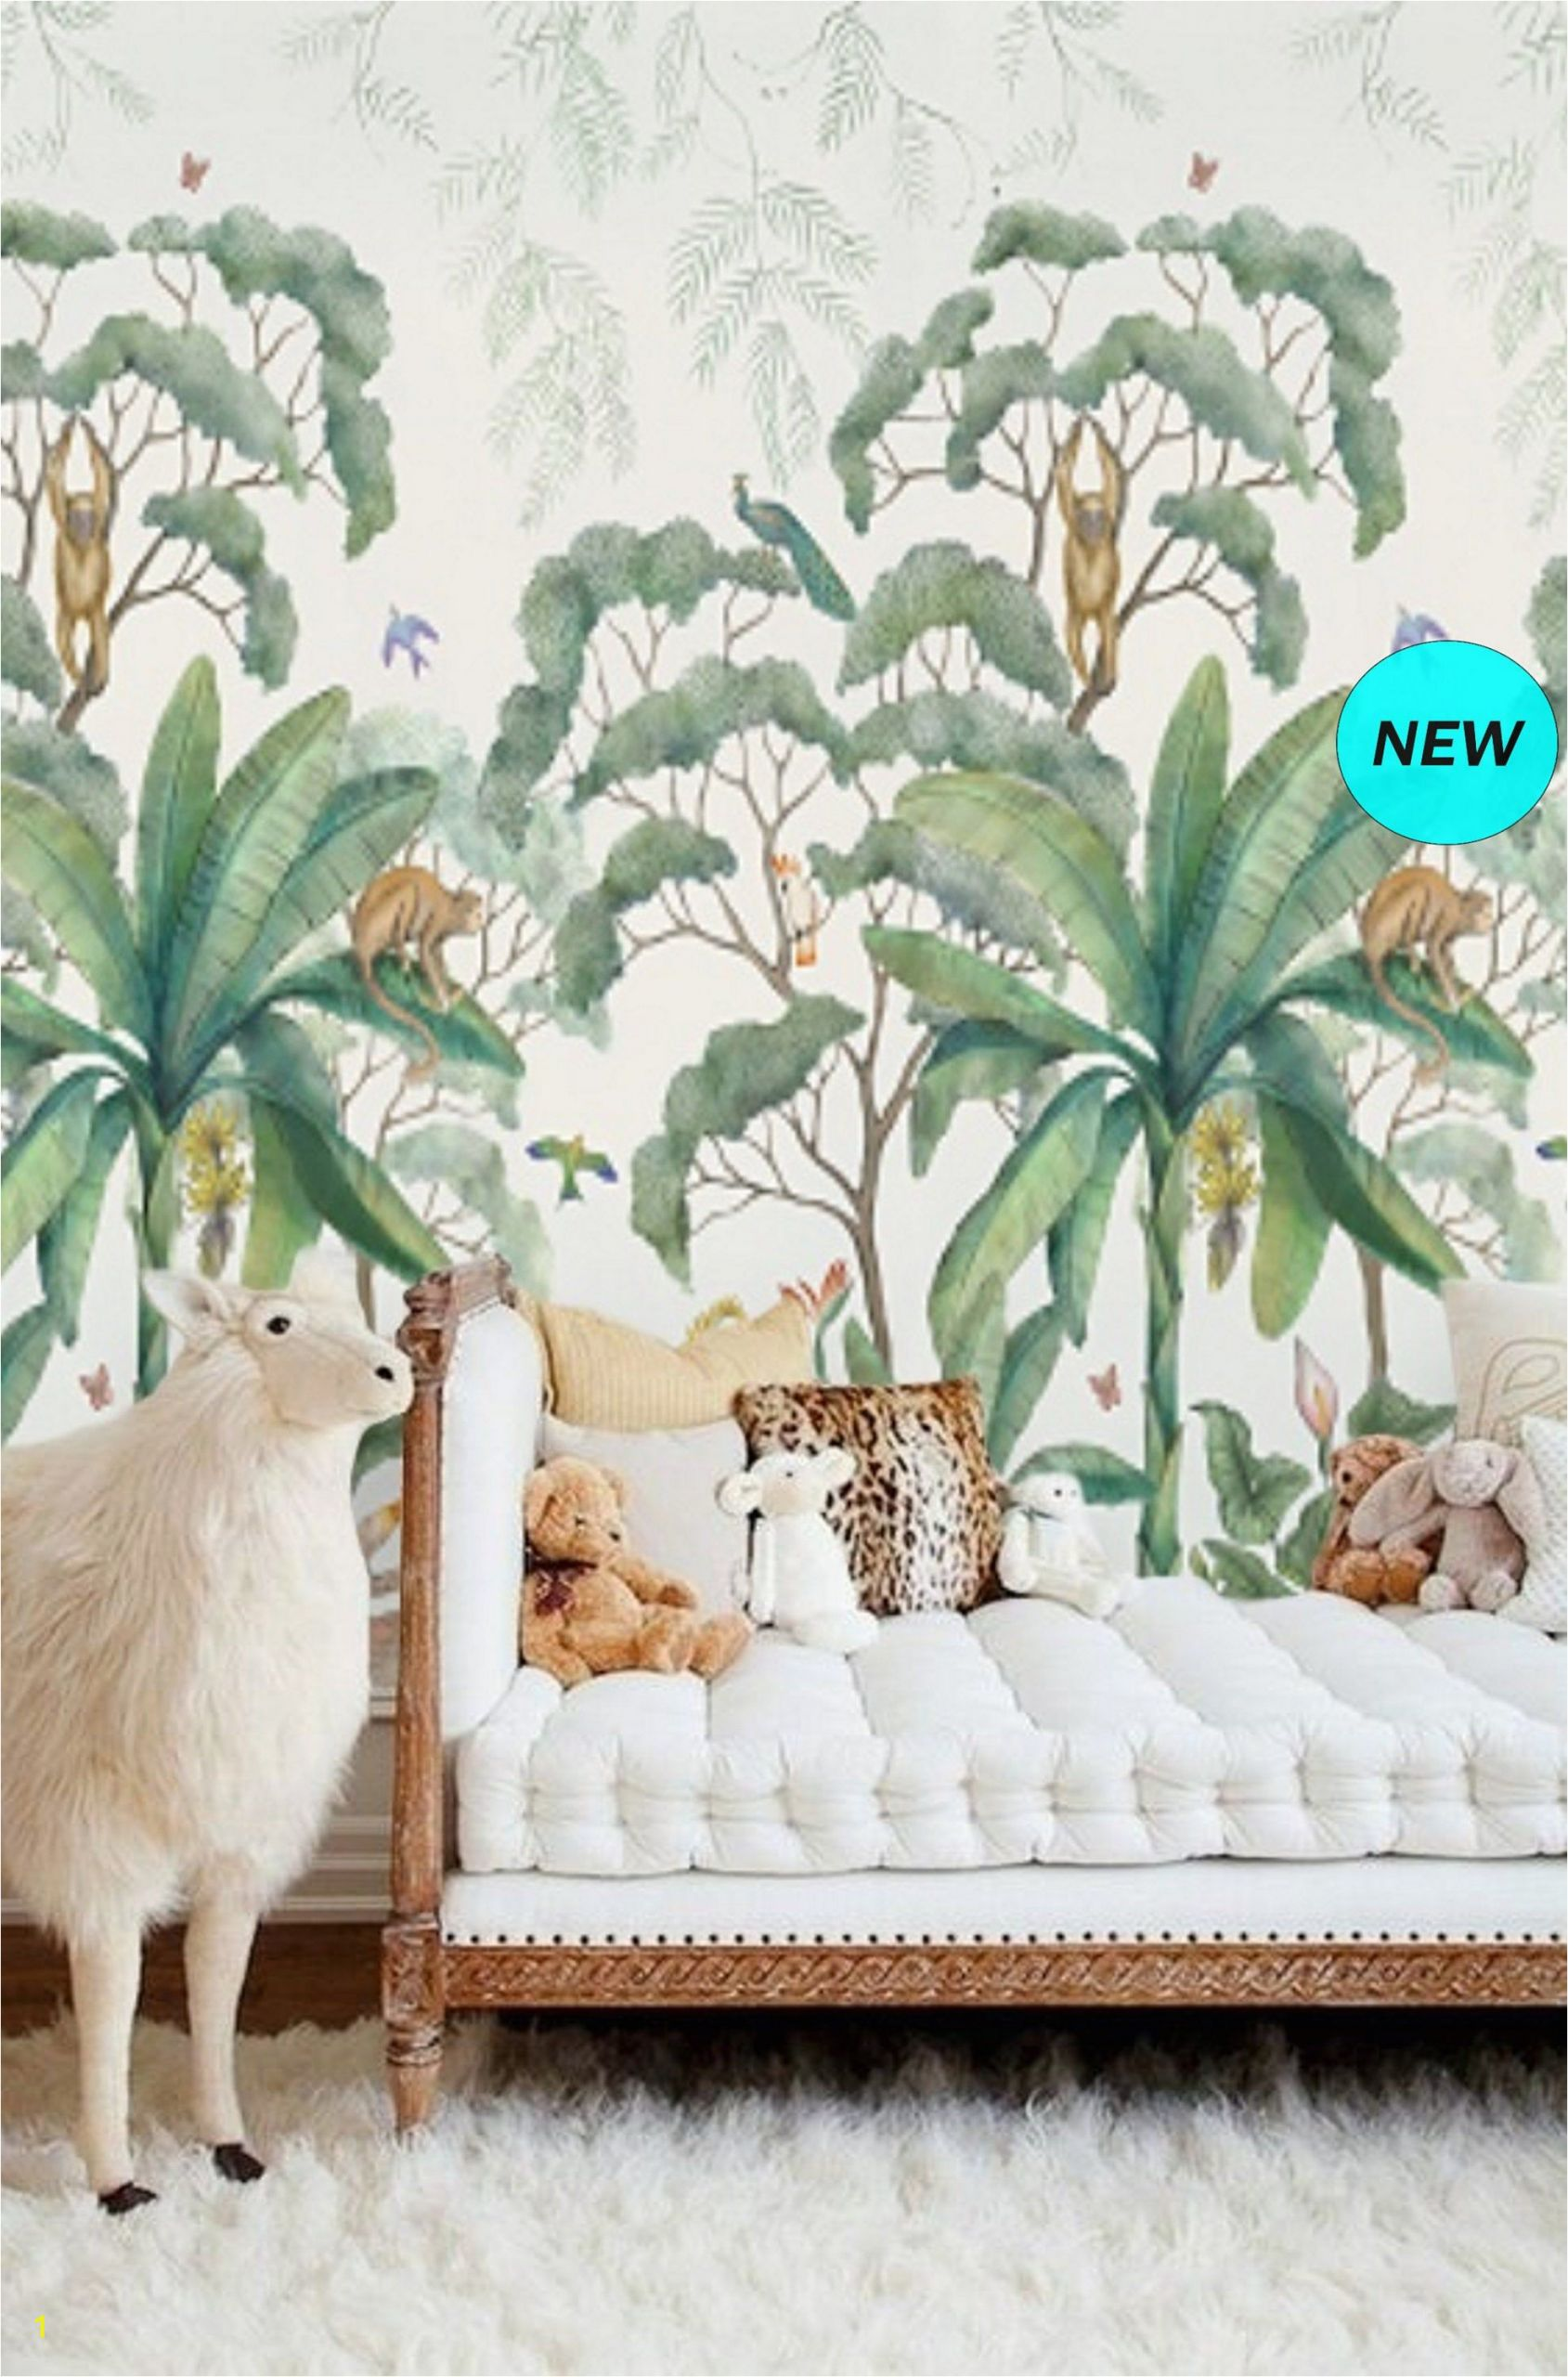 Peel and Stick Wall Murals for Kids Jungle Wall Mural Wallpaper Removable Peel & Stick Wallpaper